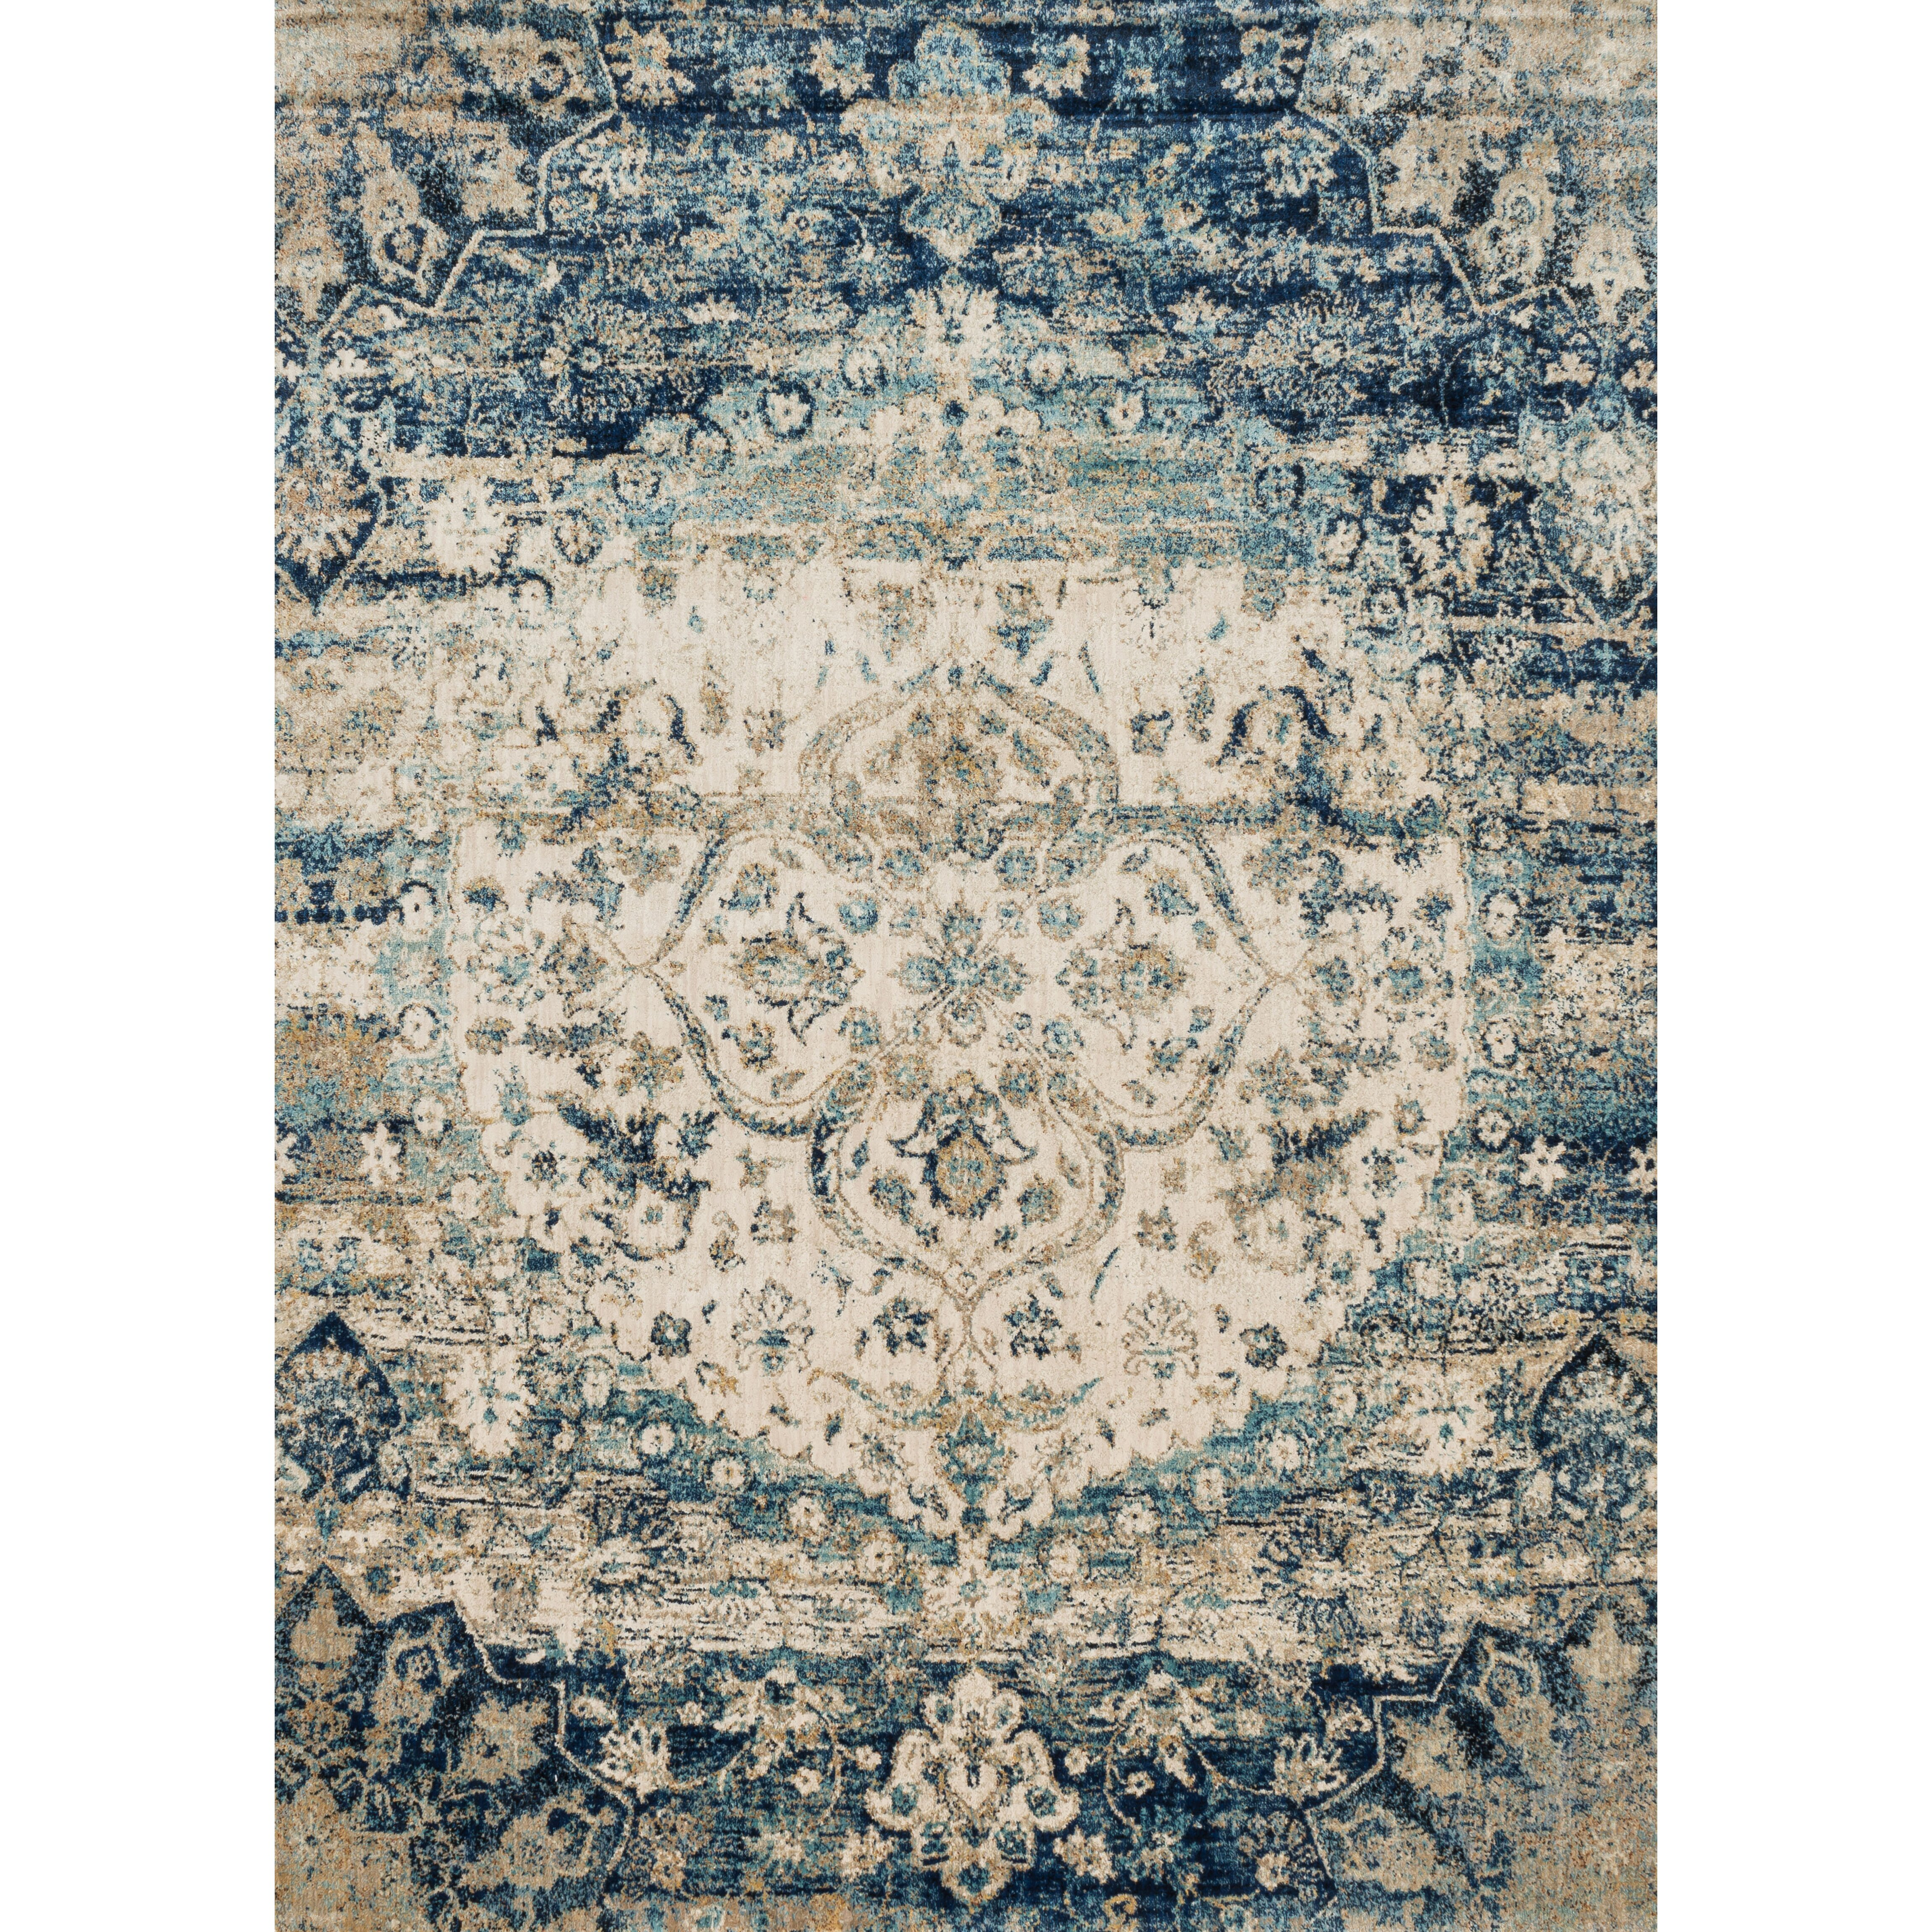 The Conestoga Trading Co Hand Woven Blue Ivory Area Rug